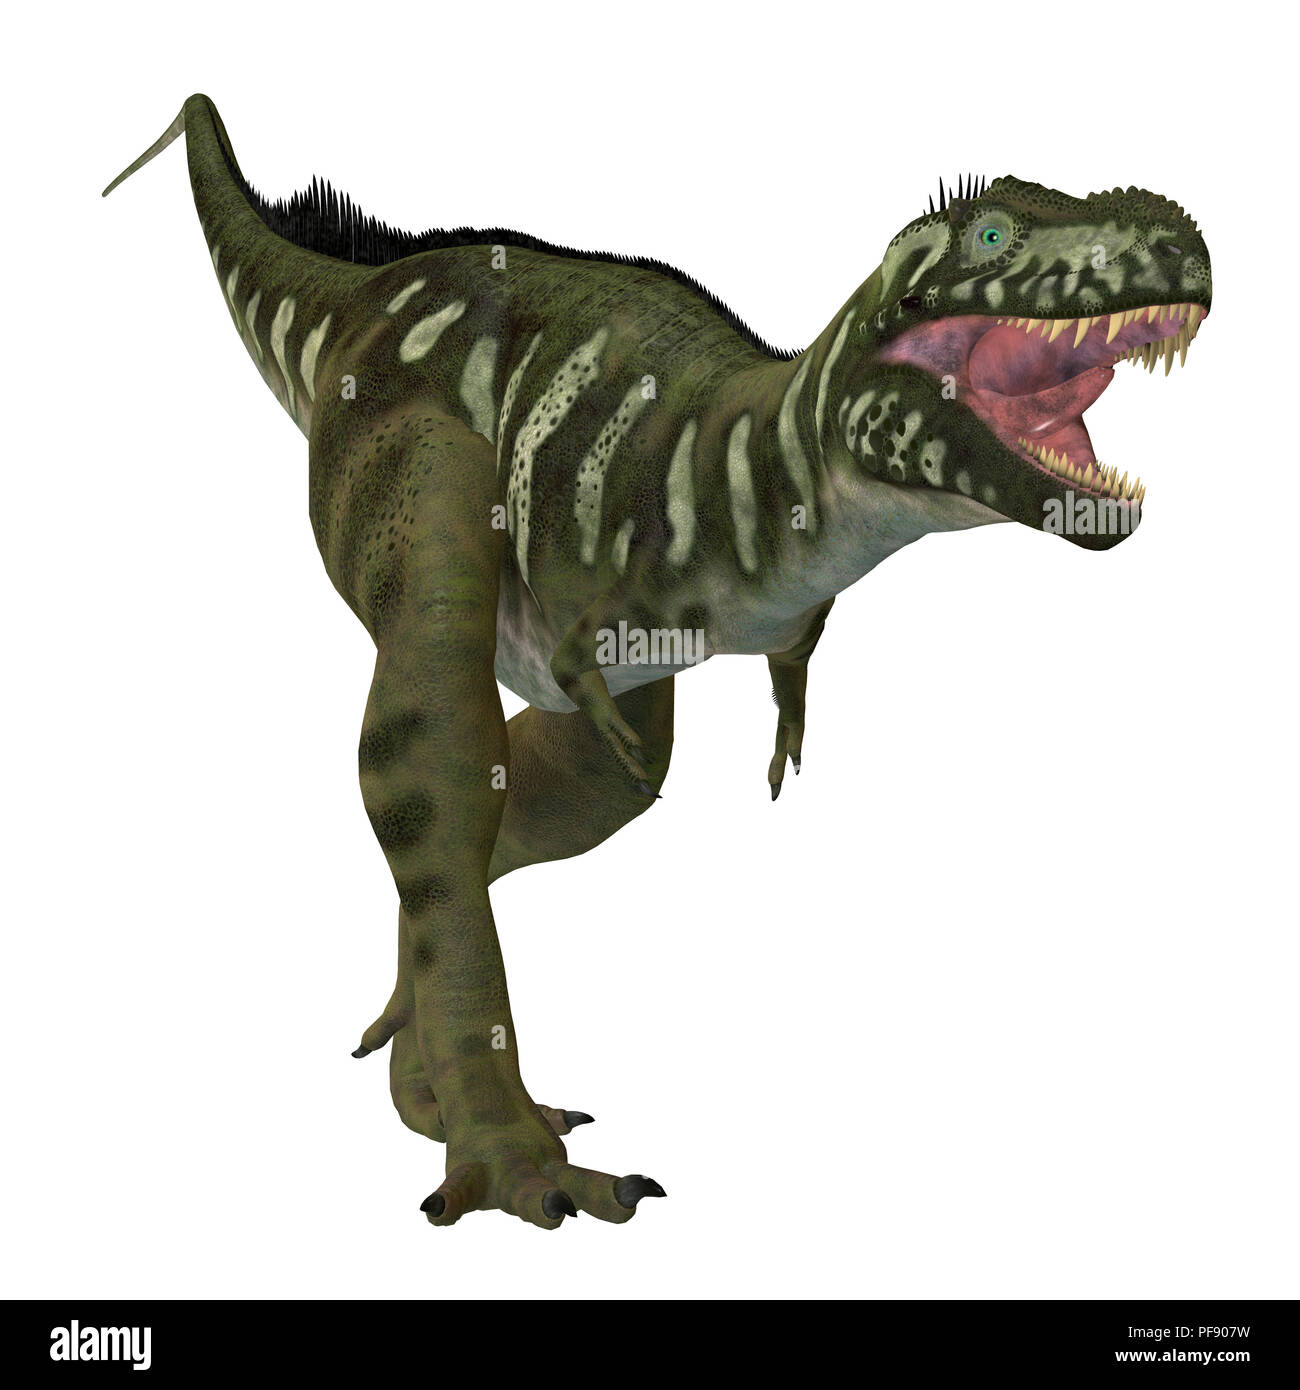 Bistahieversor Dinosaur - Bistahieversor was a carnivorous theropod dinosaur that lived in New Mexico, North America during the Cretaceous Period. - Stock Image